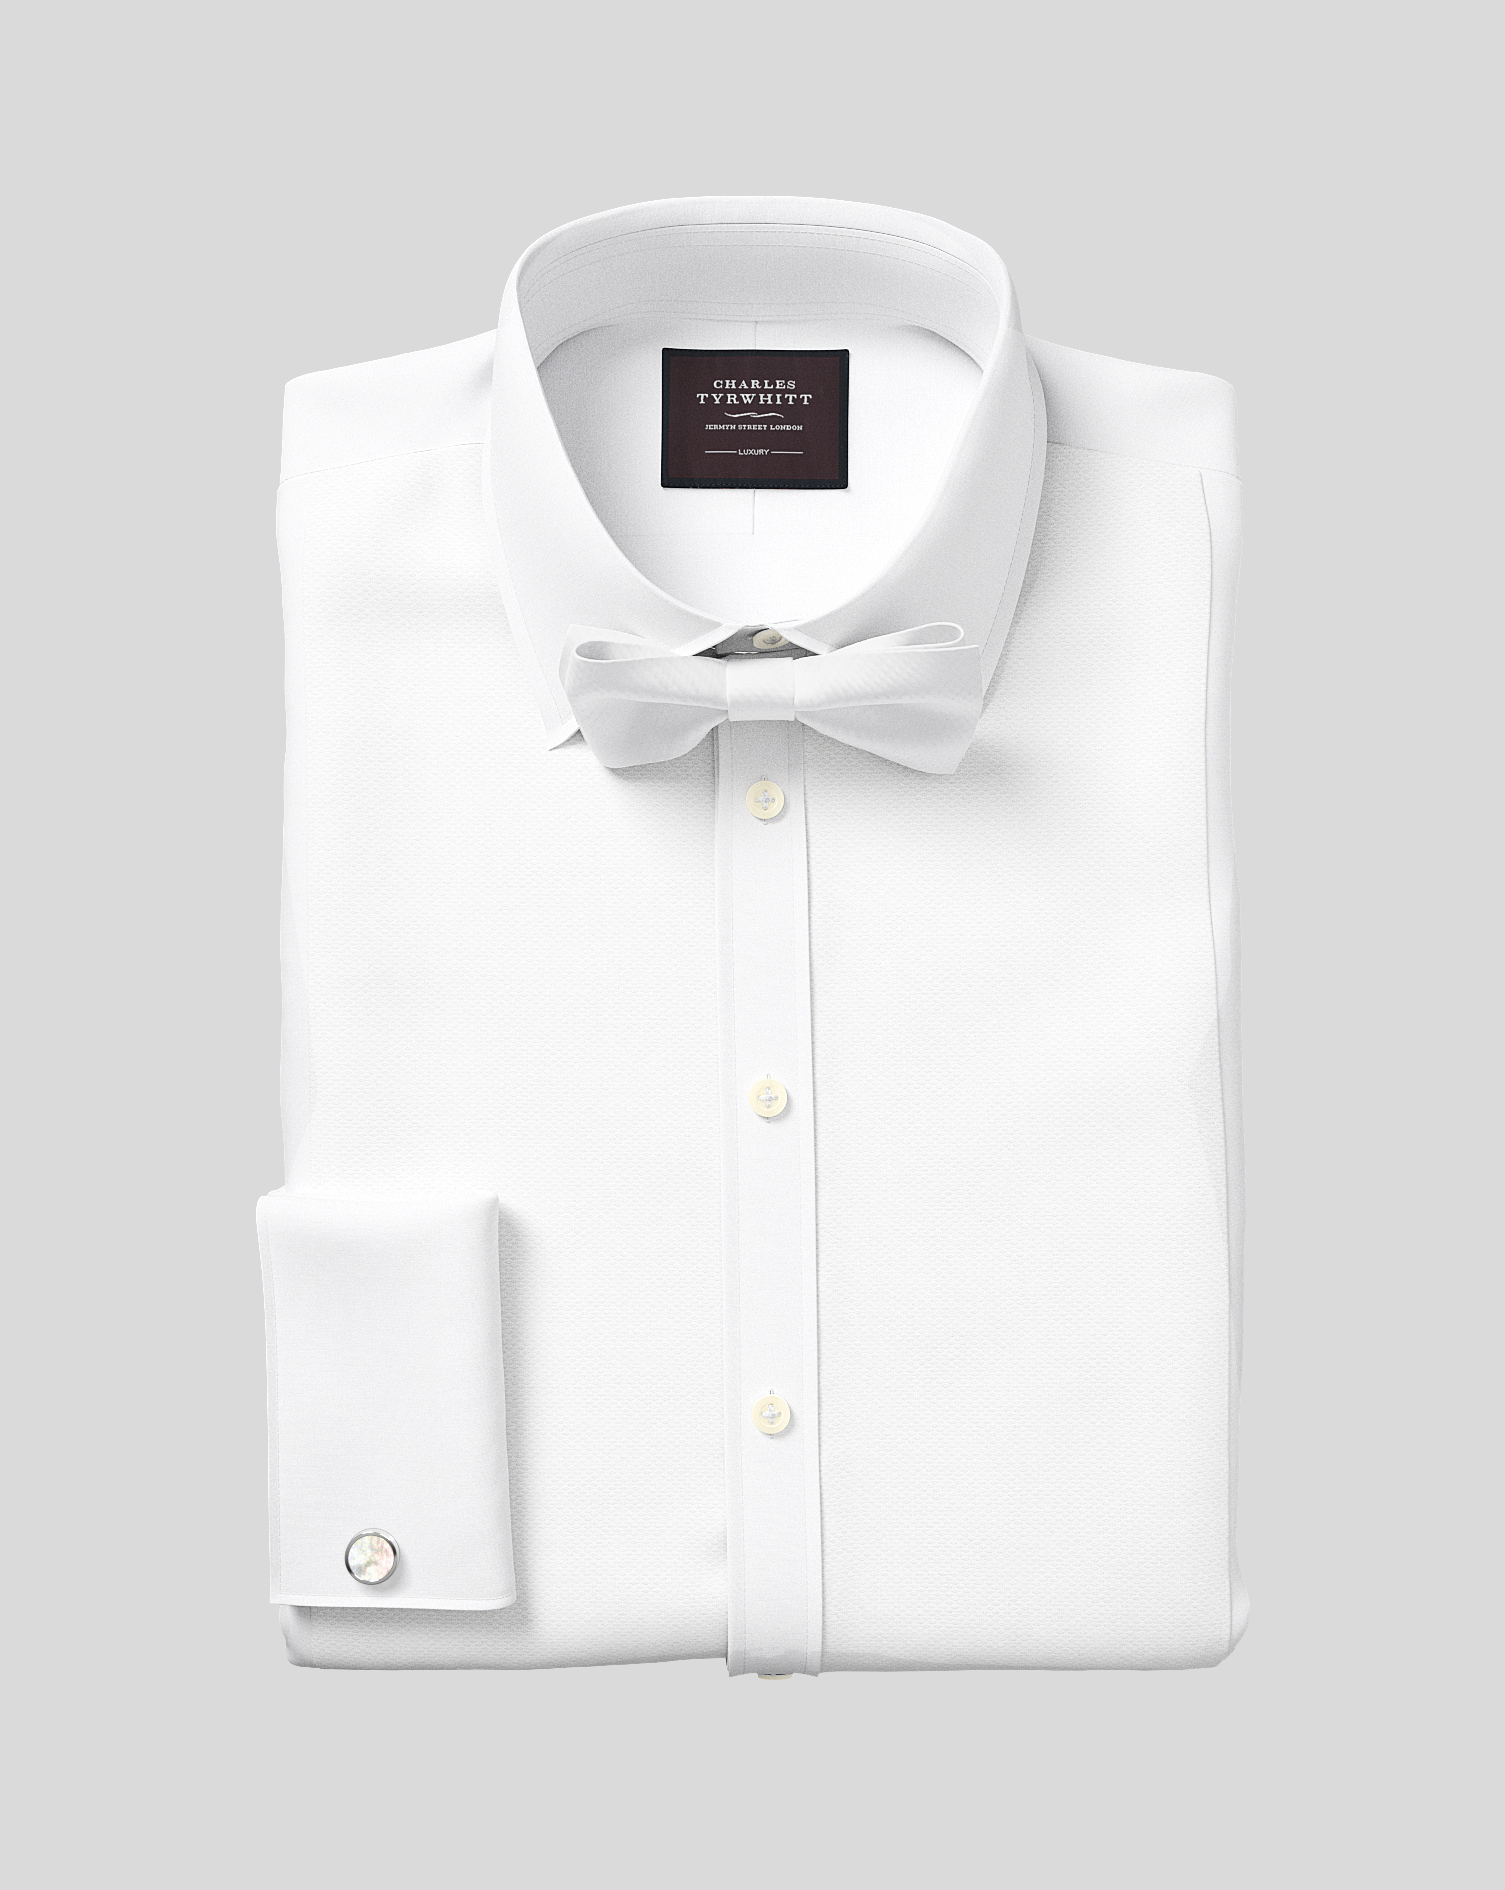 Slim Fit Luxury Marcella Bib Front White Evening Egyptian Cotton Formal Shirt Double Cuff Size 15/35